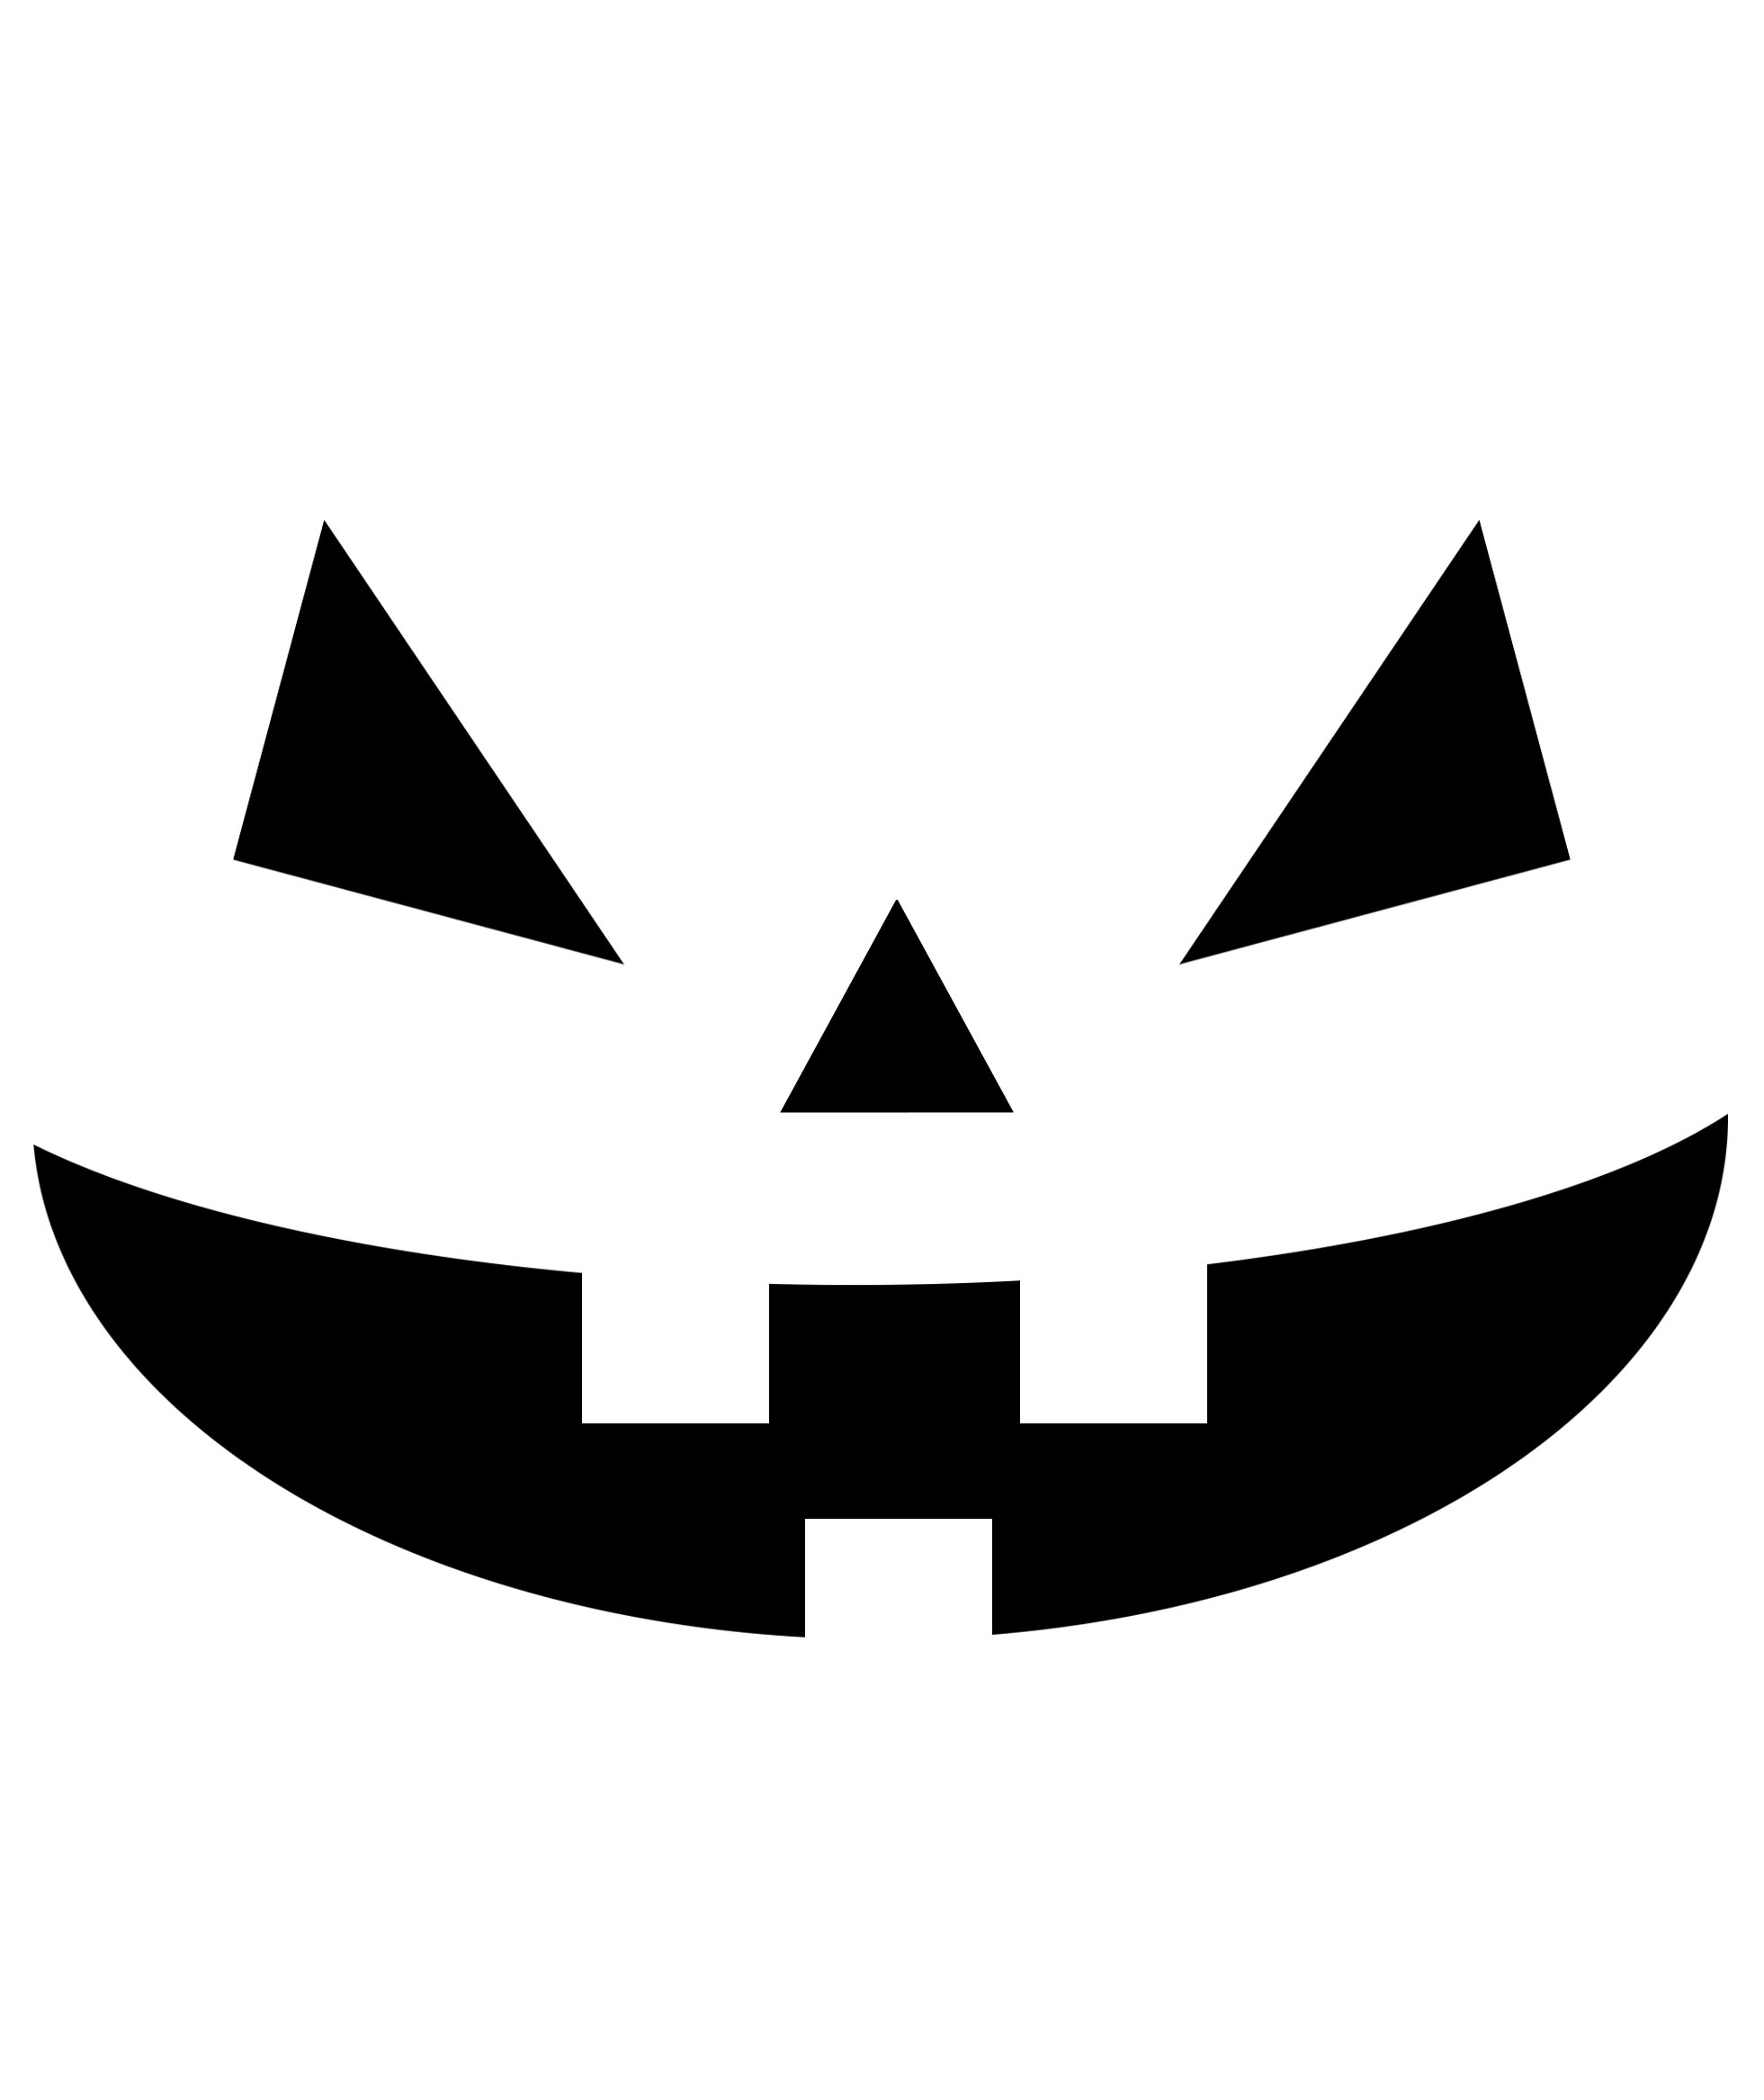 pumpkin templates free - 8 pumpkin carving stencils real simple